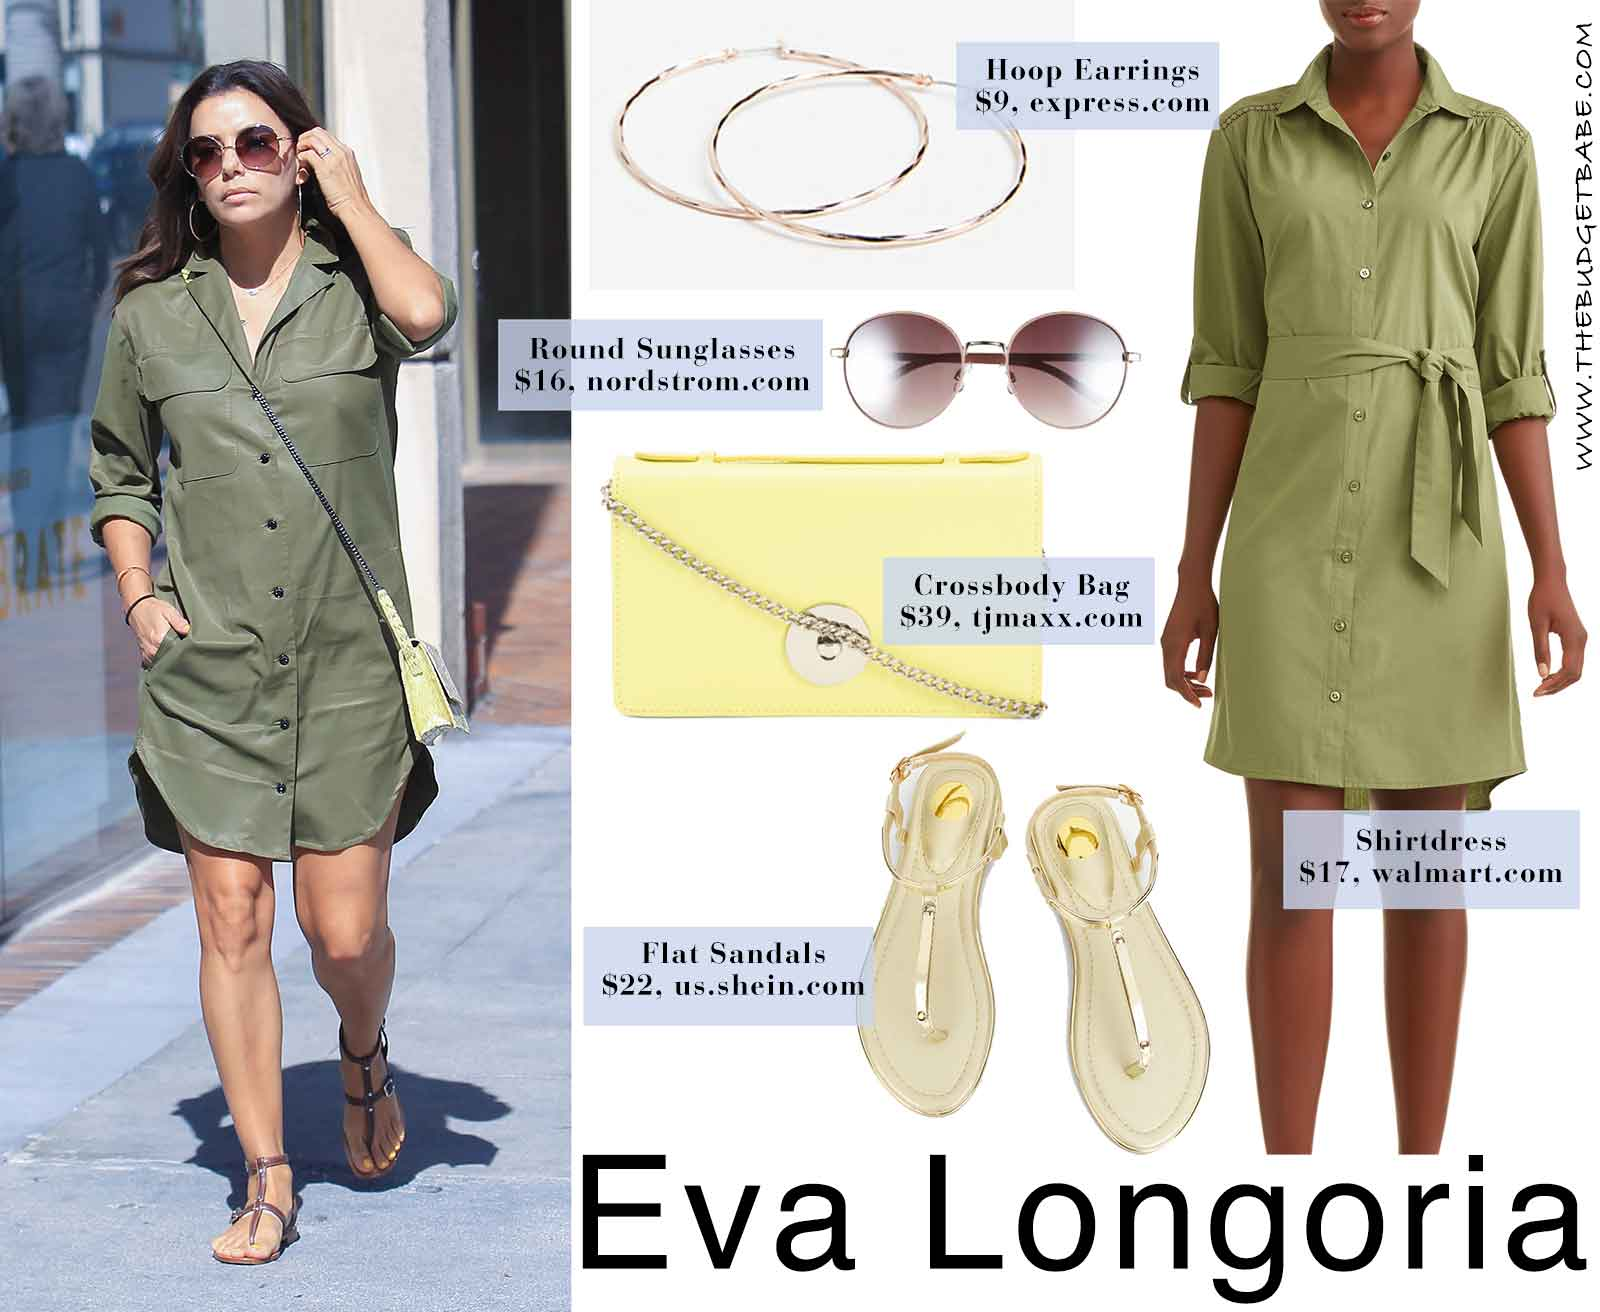 Eva Longoria's shirtdress style for summer - love this